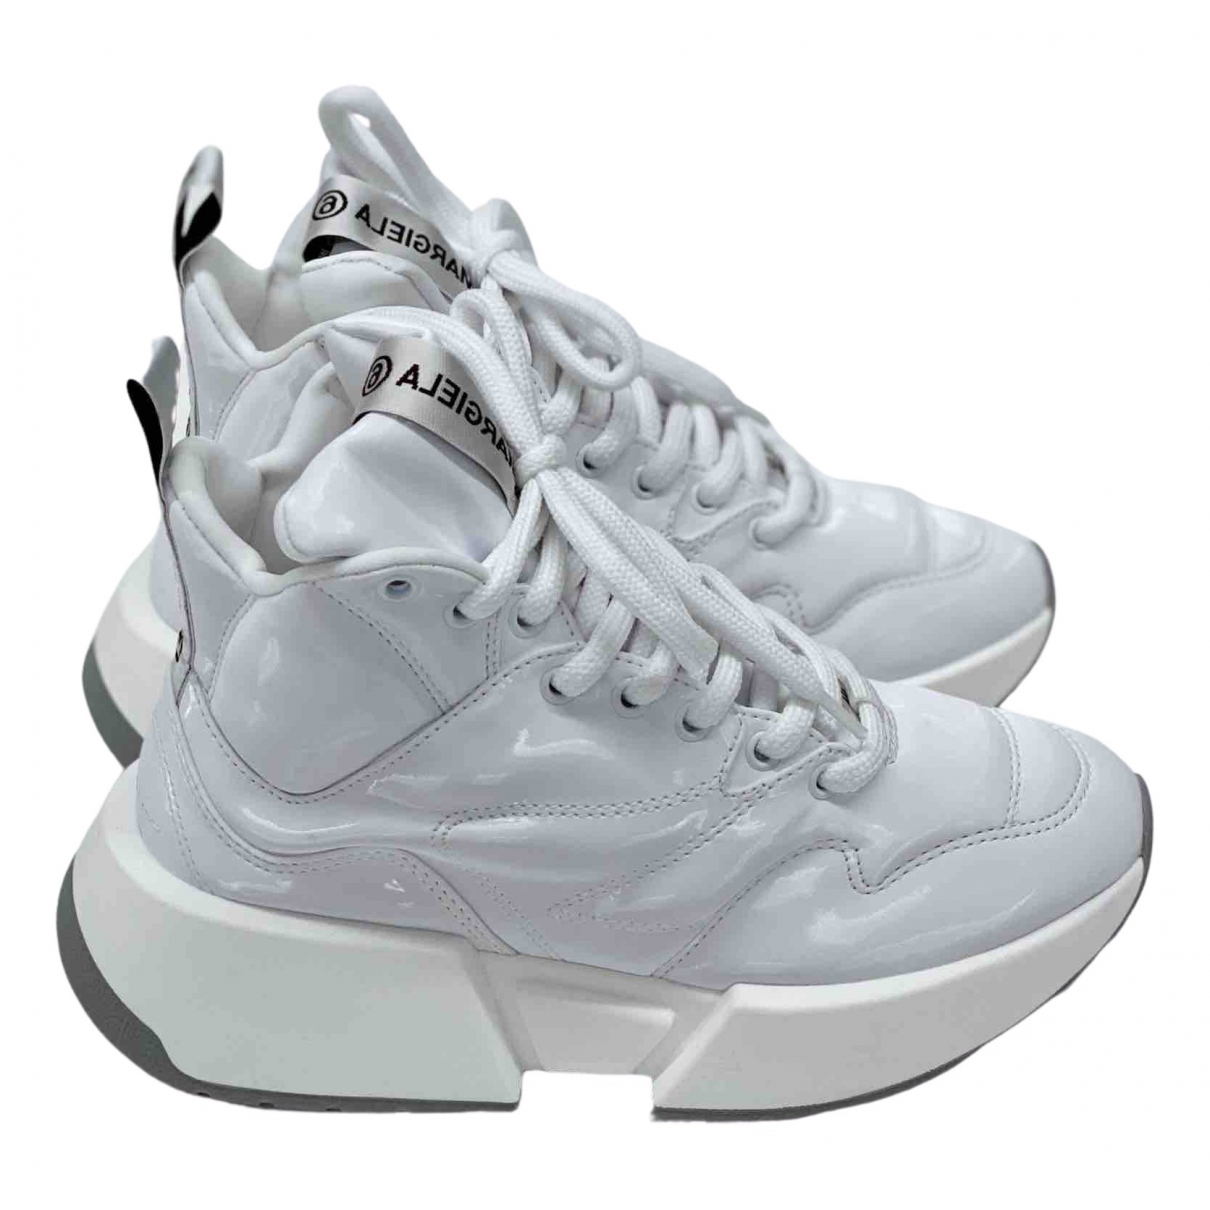 Mm6 \N White Patent leather Trainers for Women 37 EU